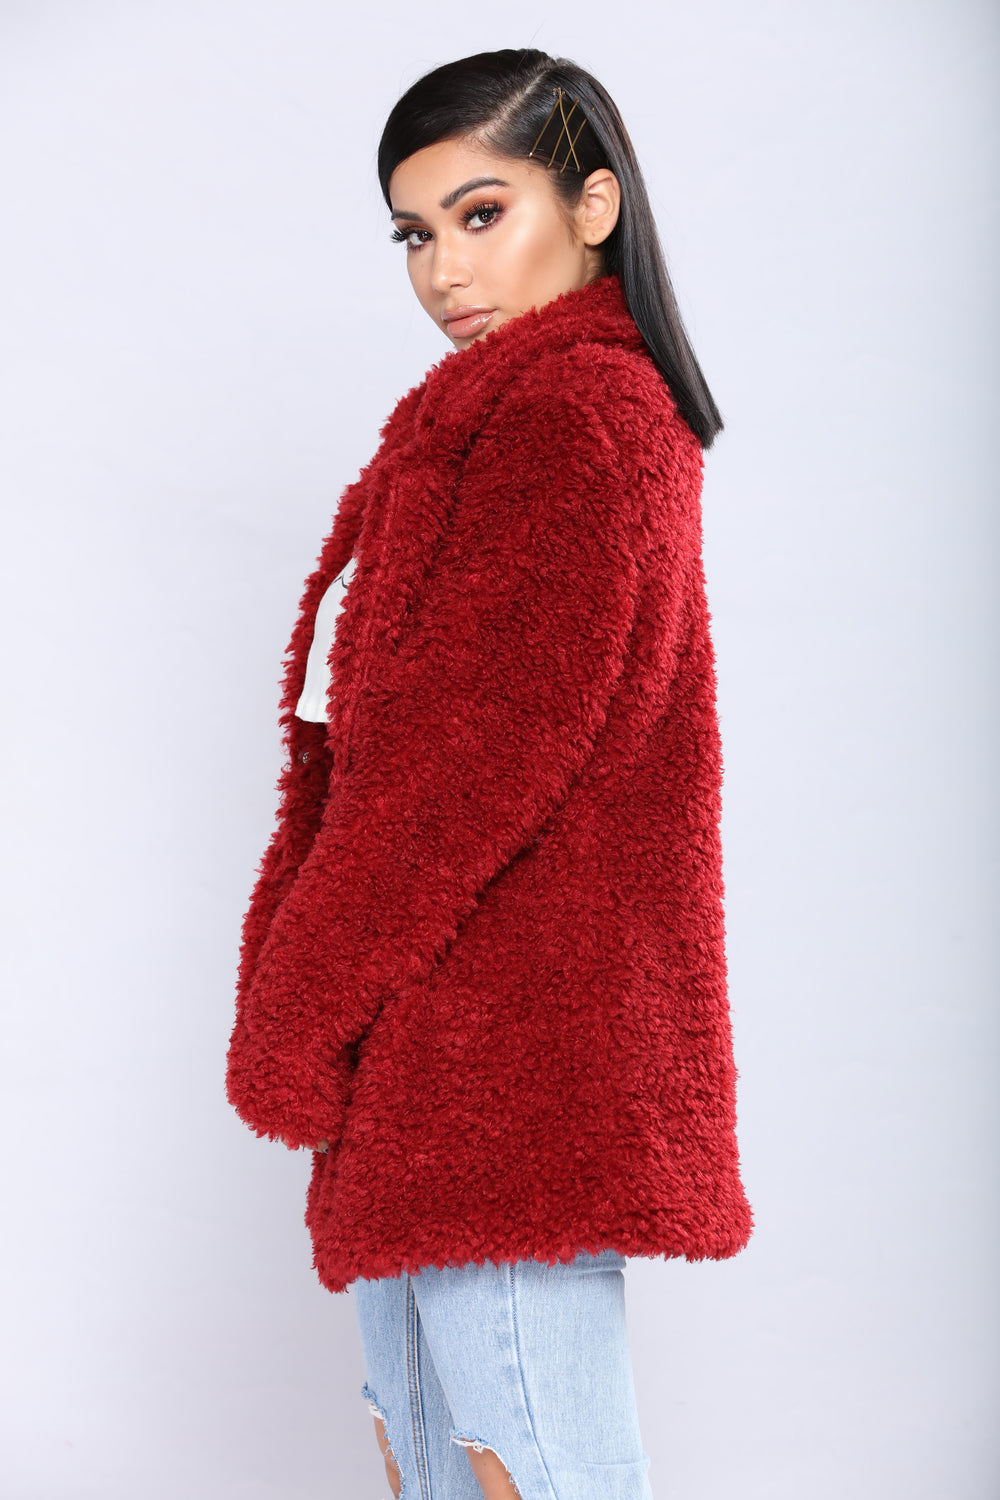 Sweet Nothings Fuzzy Jacket - Burgundy